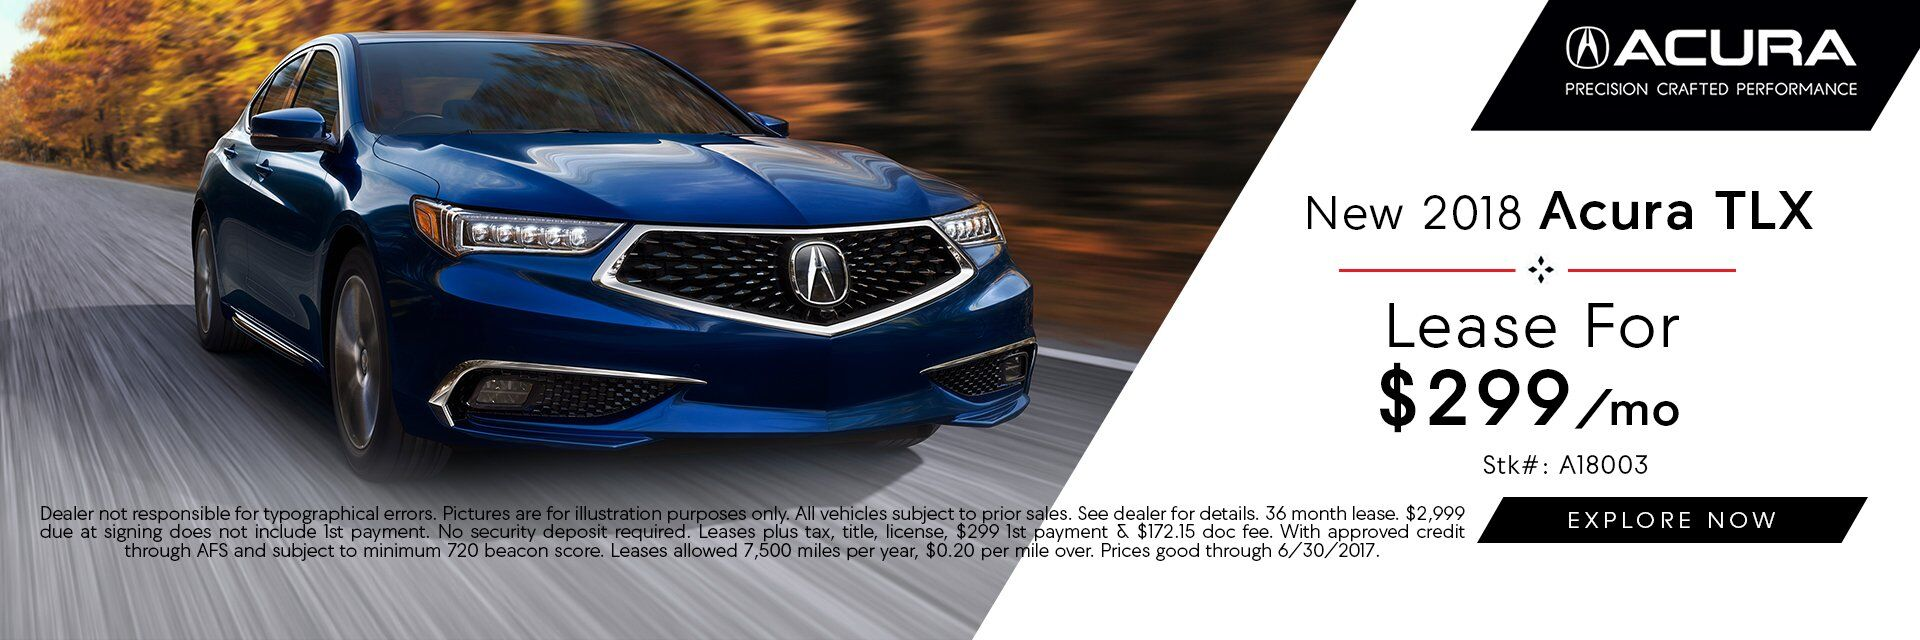 2018 TLX $299 Lease